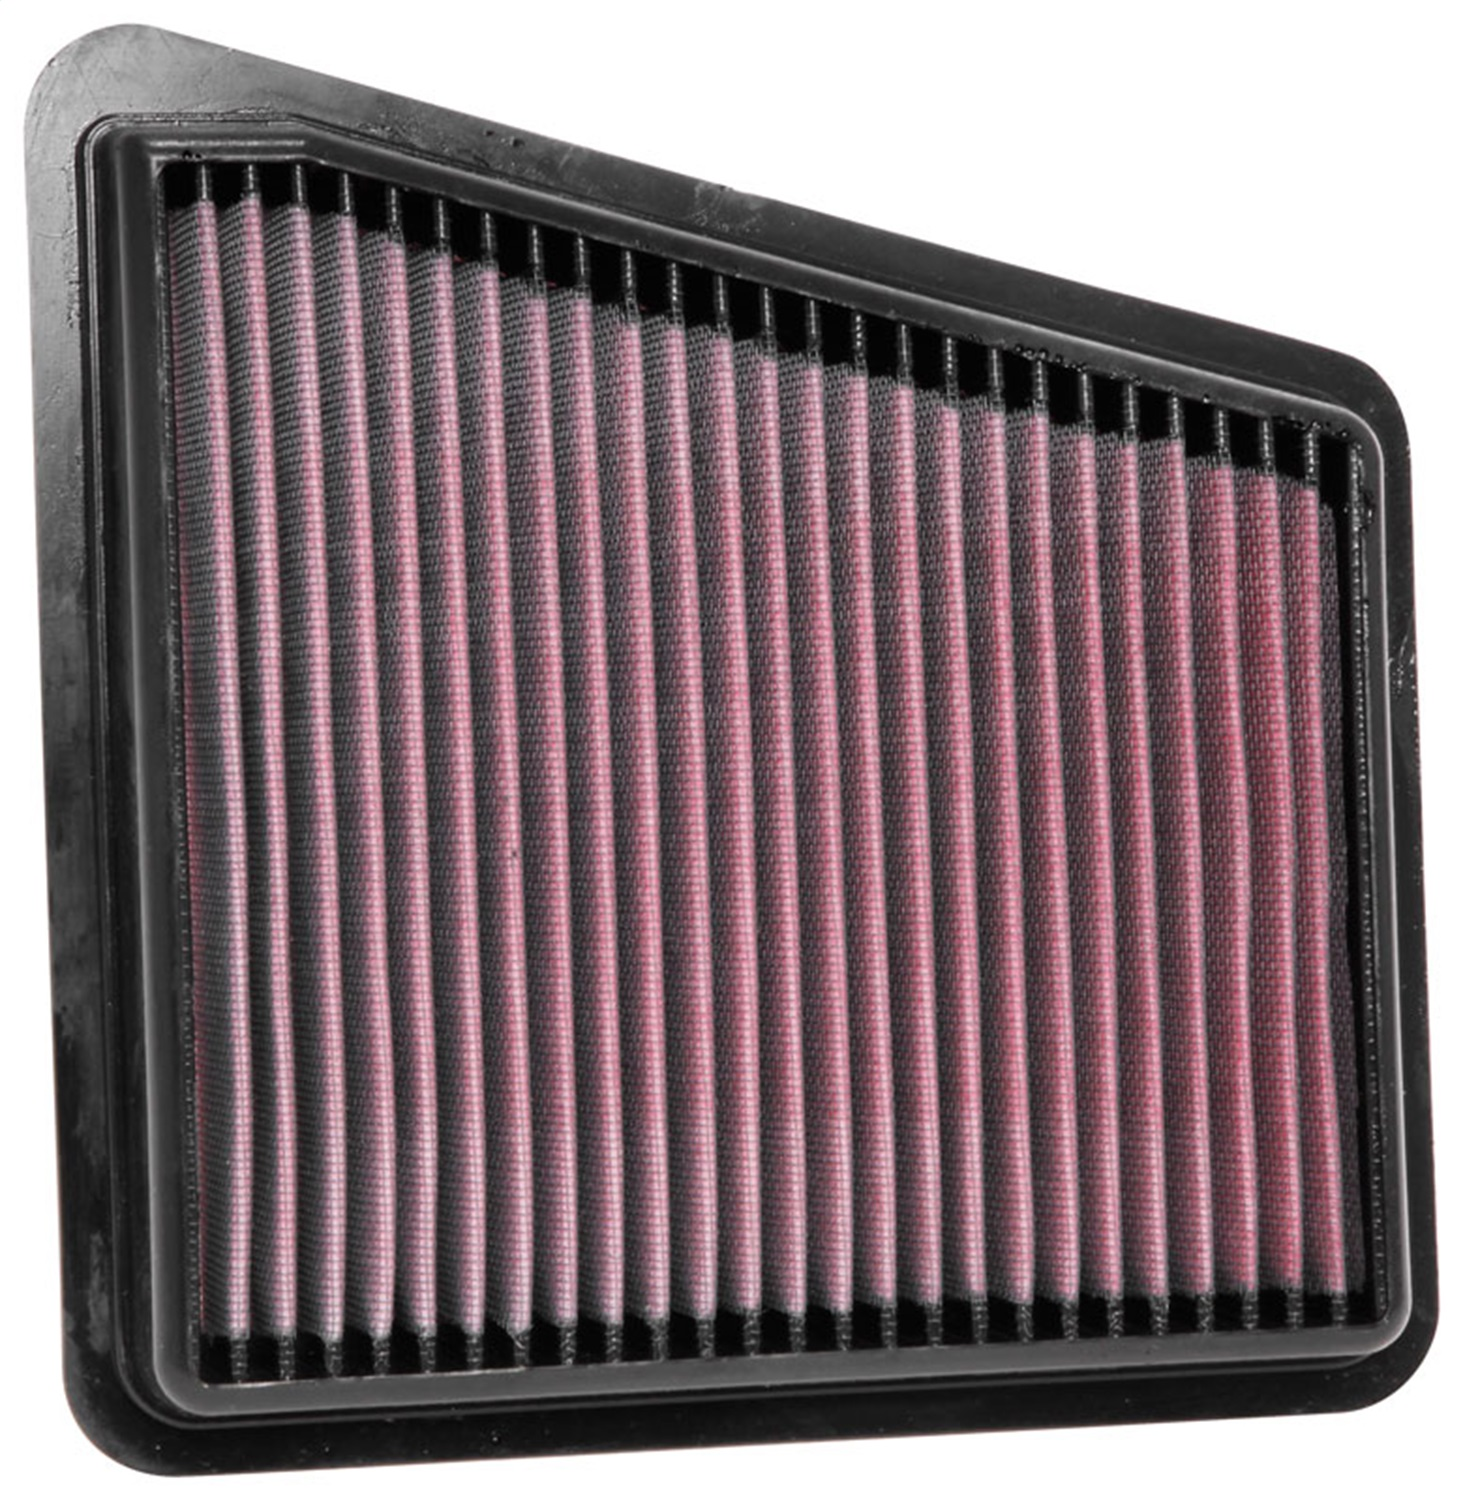 K/&N E-3723 High Performance Replacement Air Filter K/&N Engineering